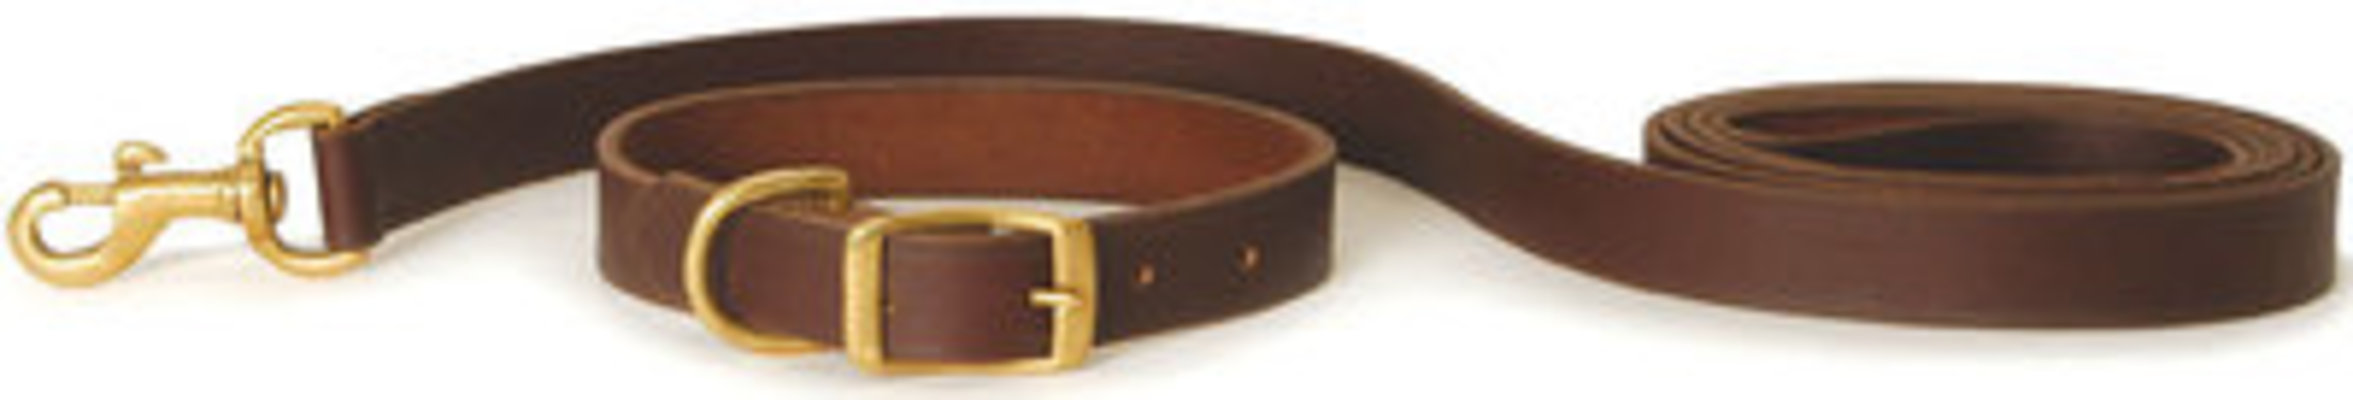 "6' Flat Leather Leash, 3/4"" W"